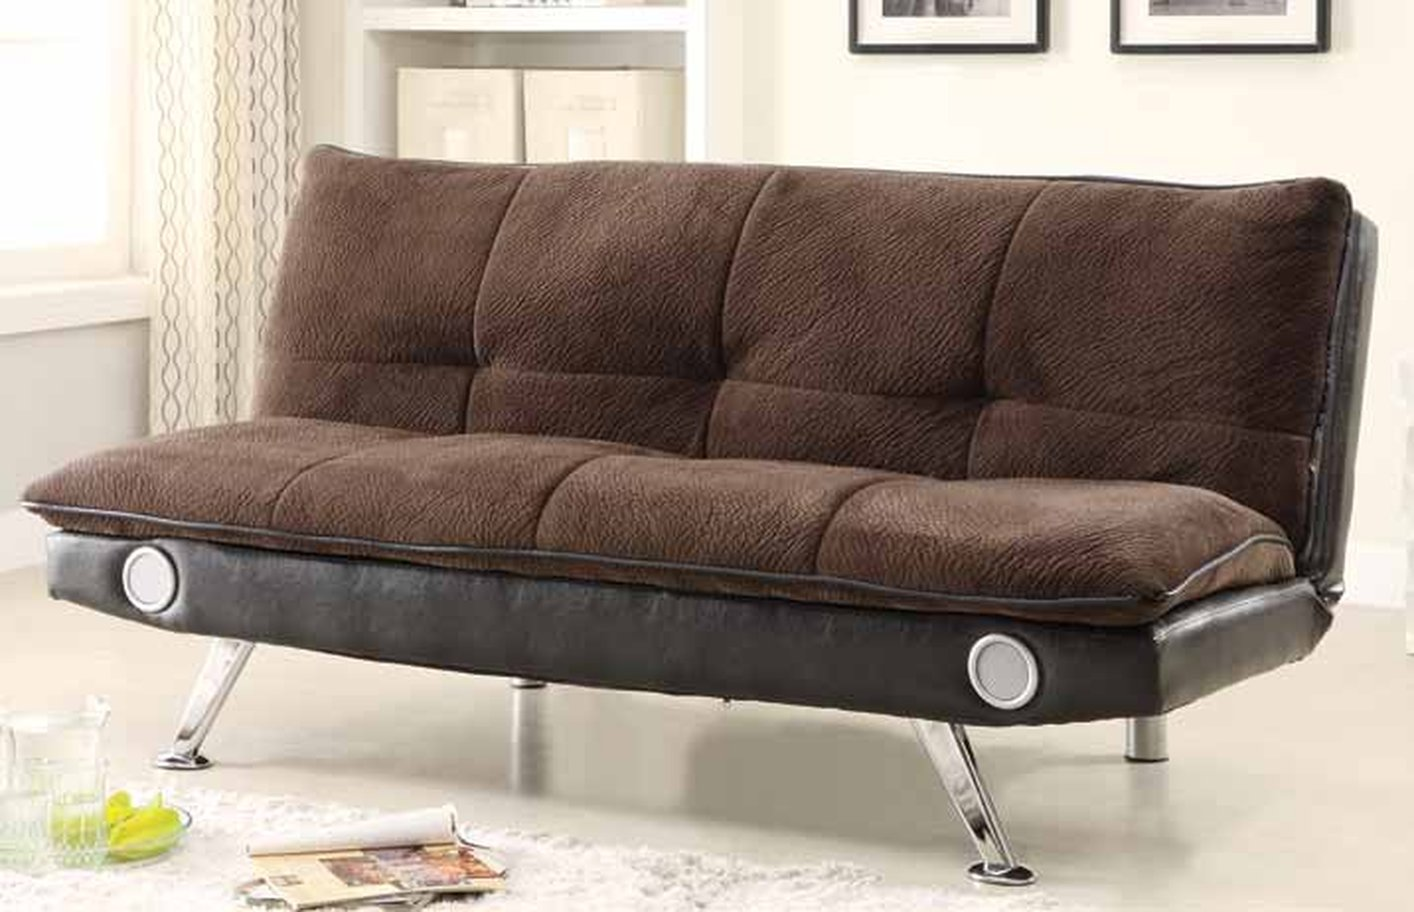 Braxton Brown Sofa Bed With Bluetooth Connectivity